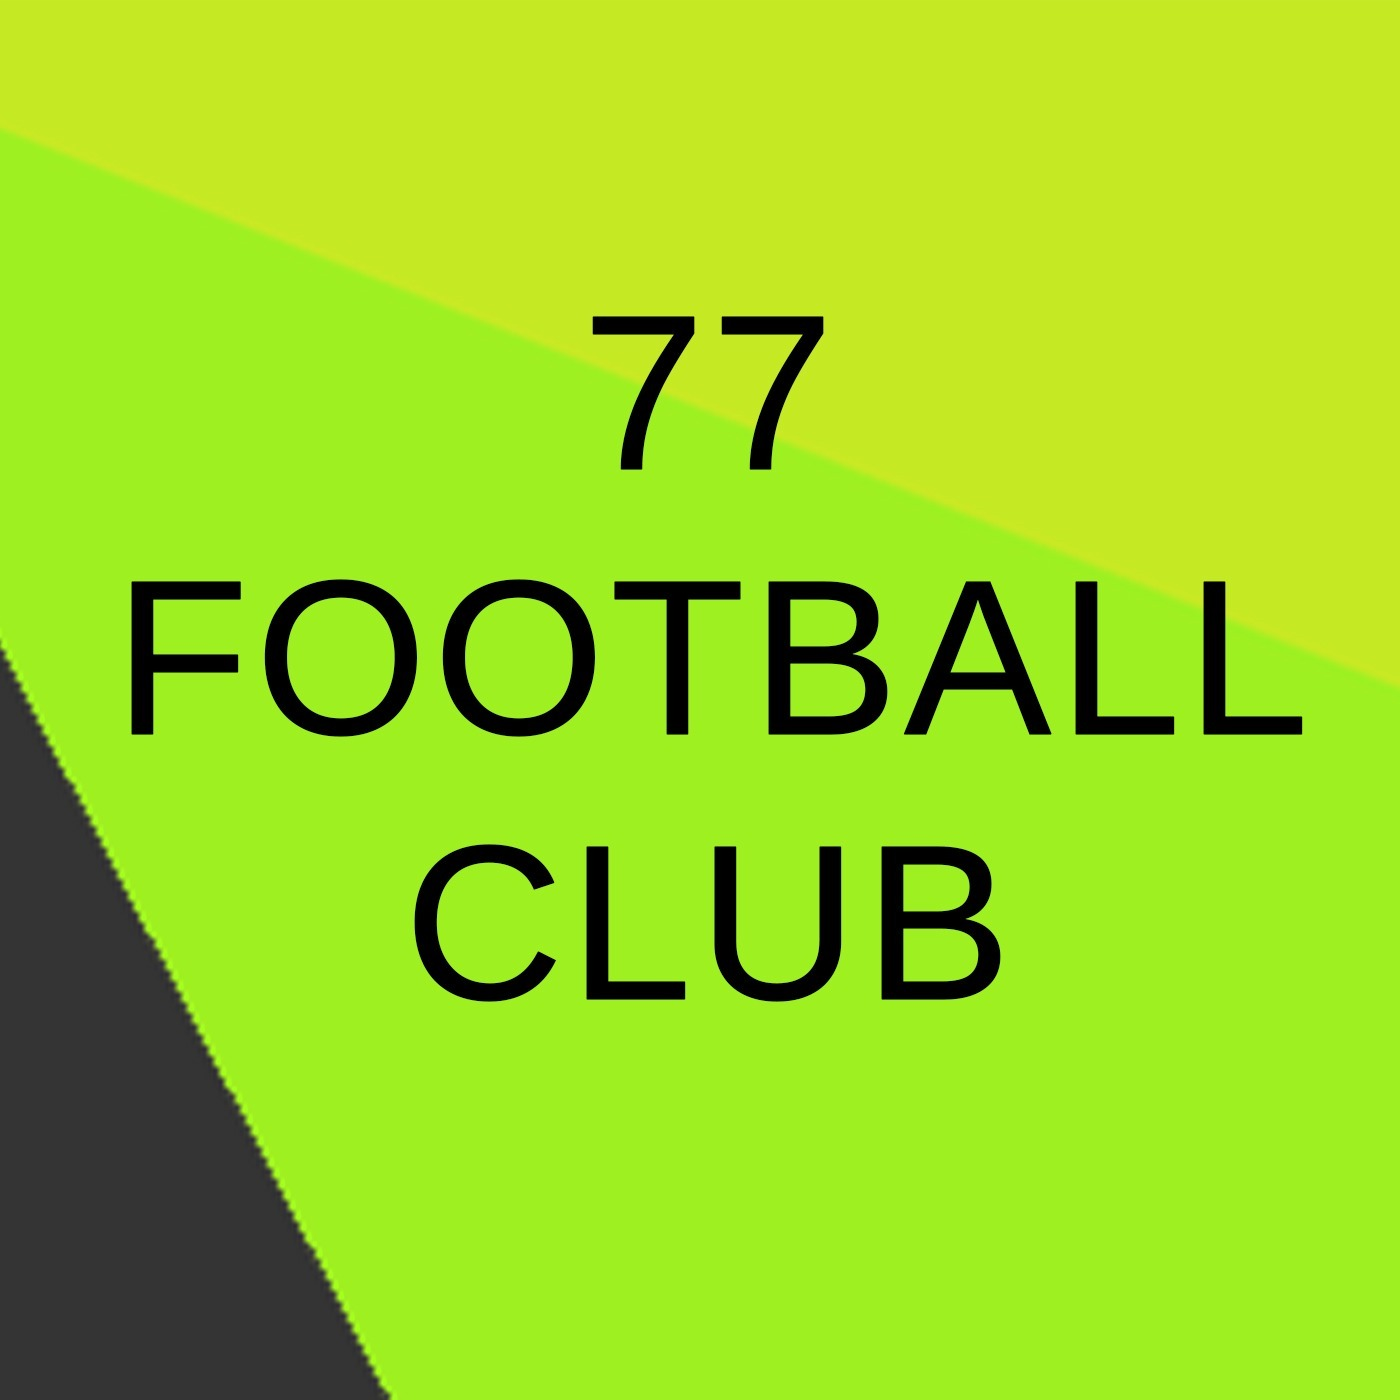 77football club 19022020 fm